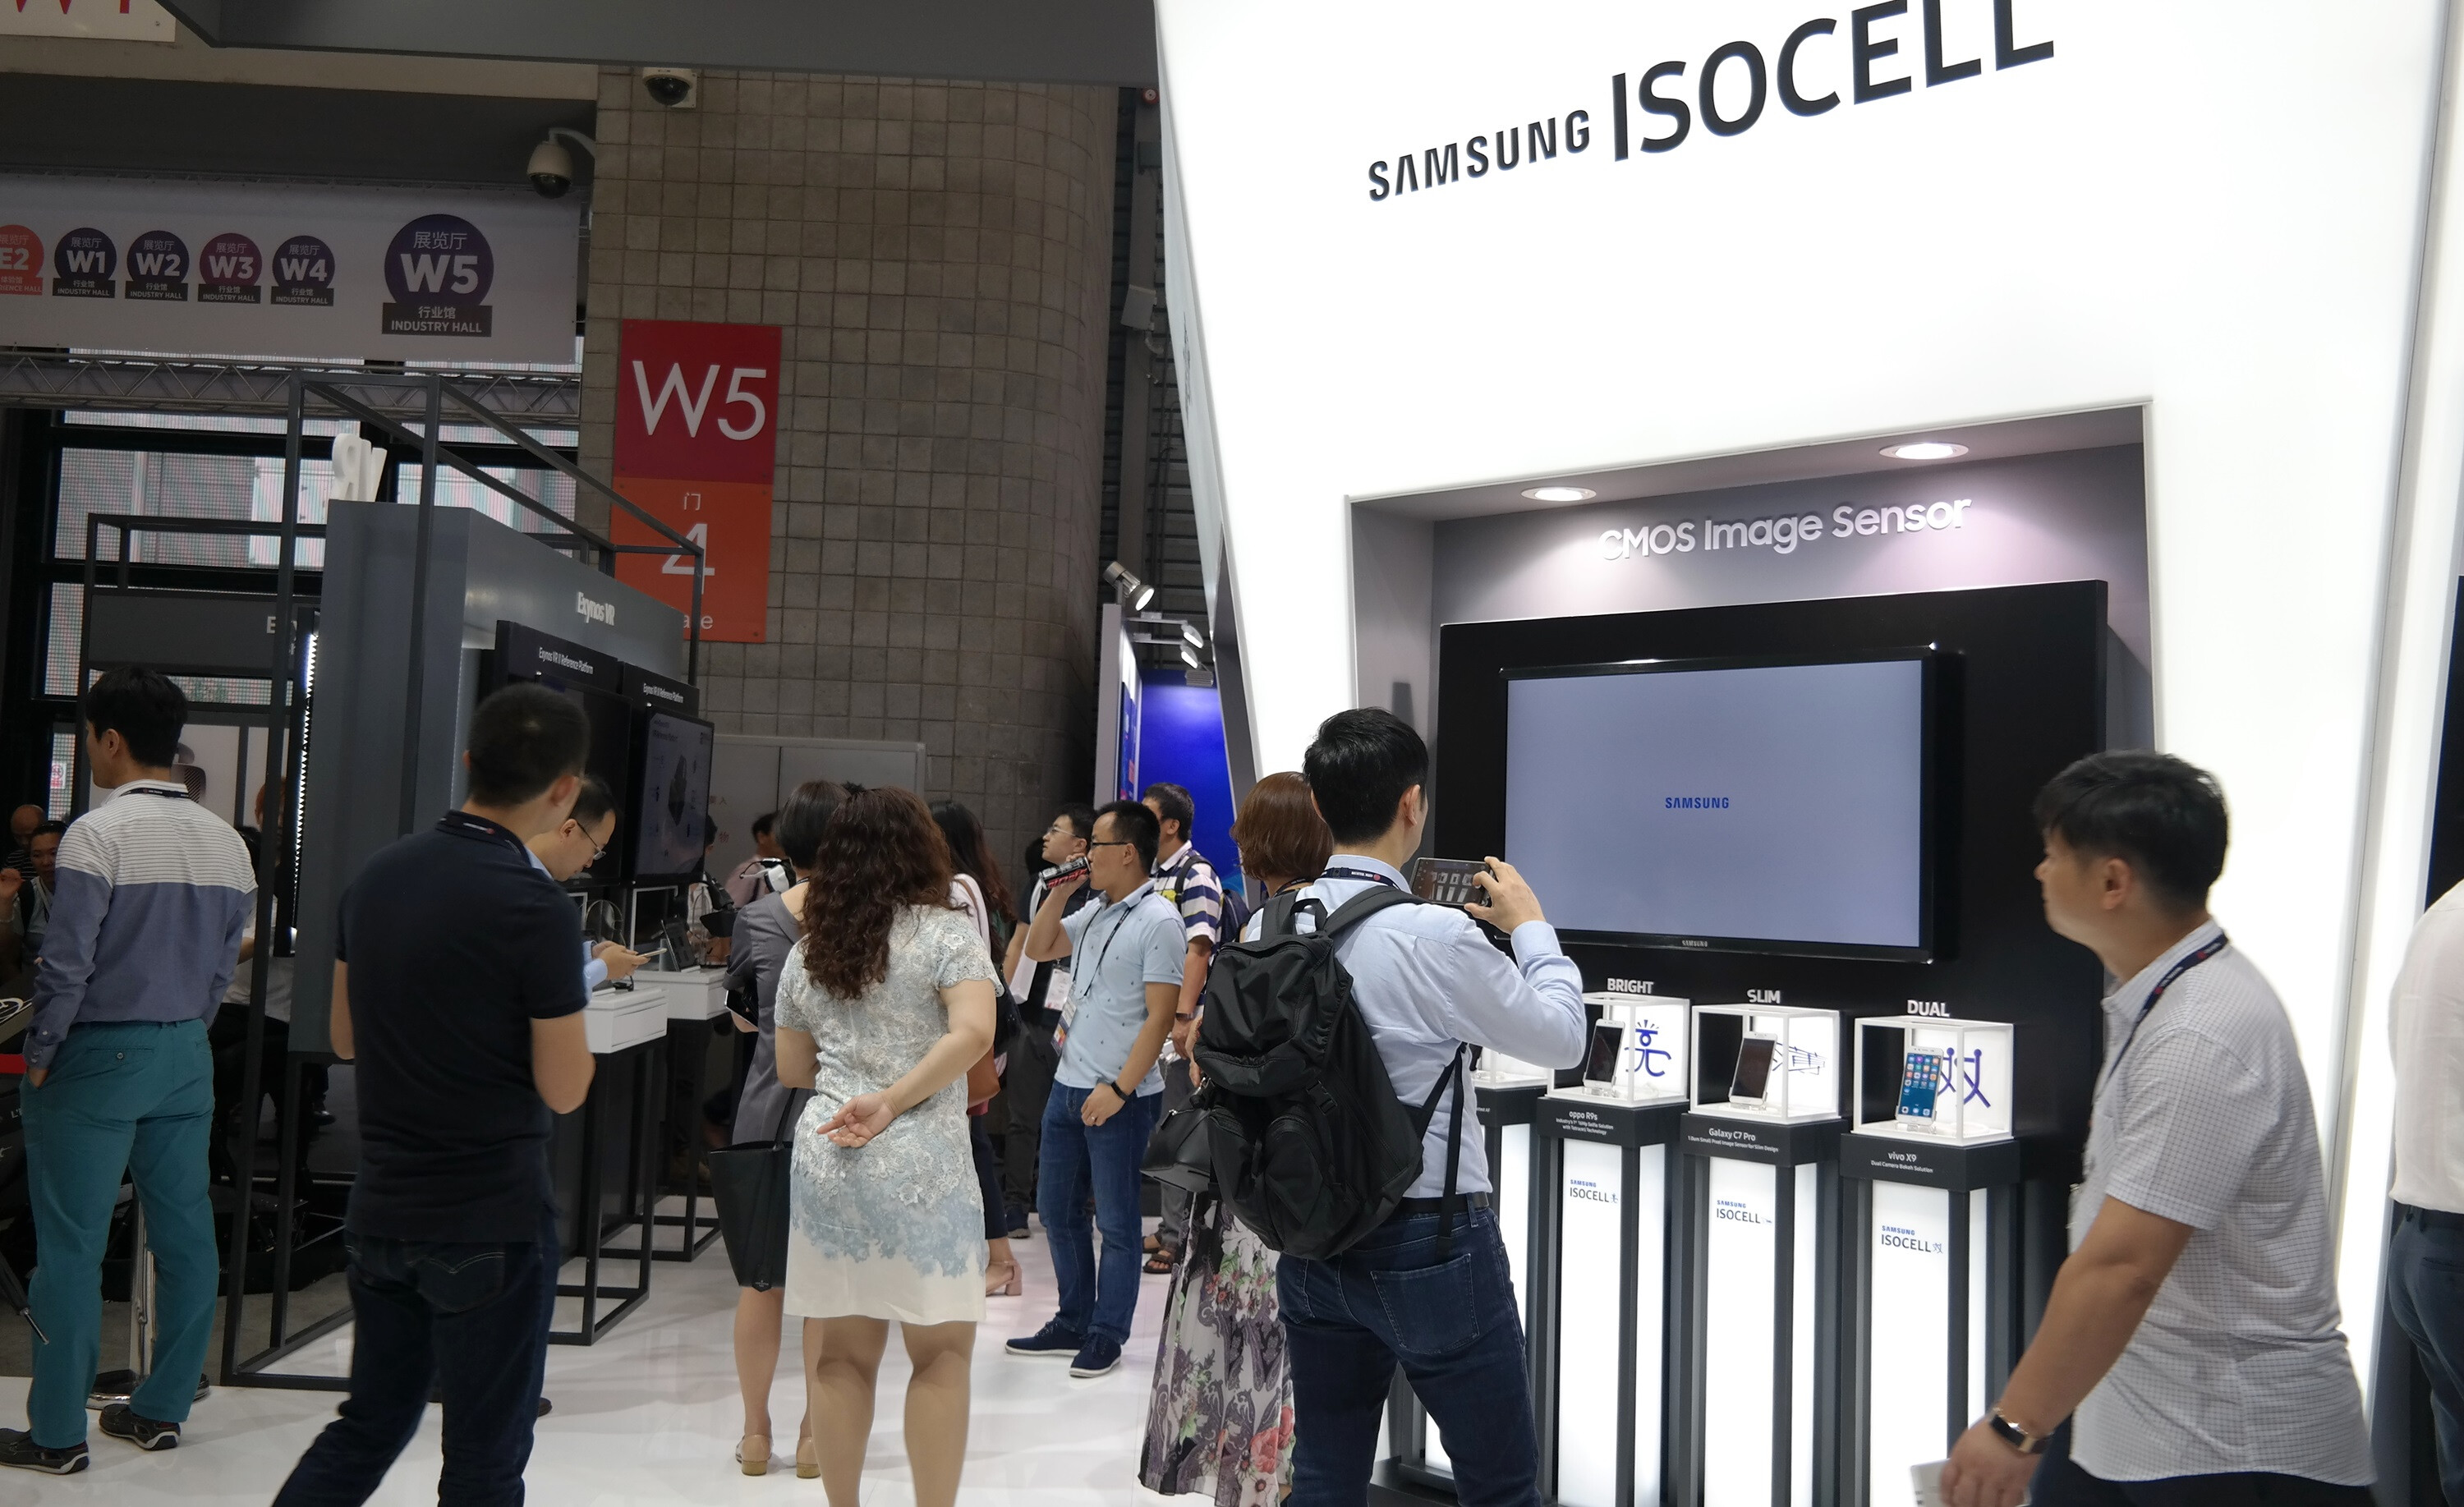 Samsung Shows Us The Benefits of Their Sensor Photo Isocell in a Video